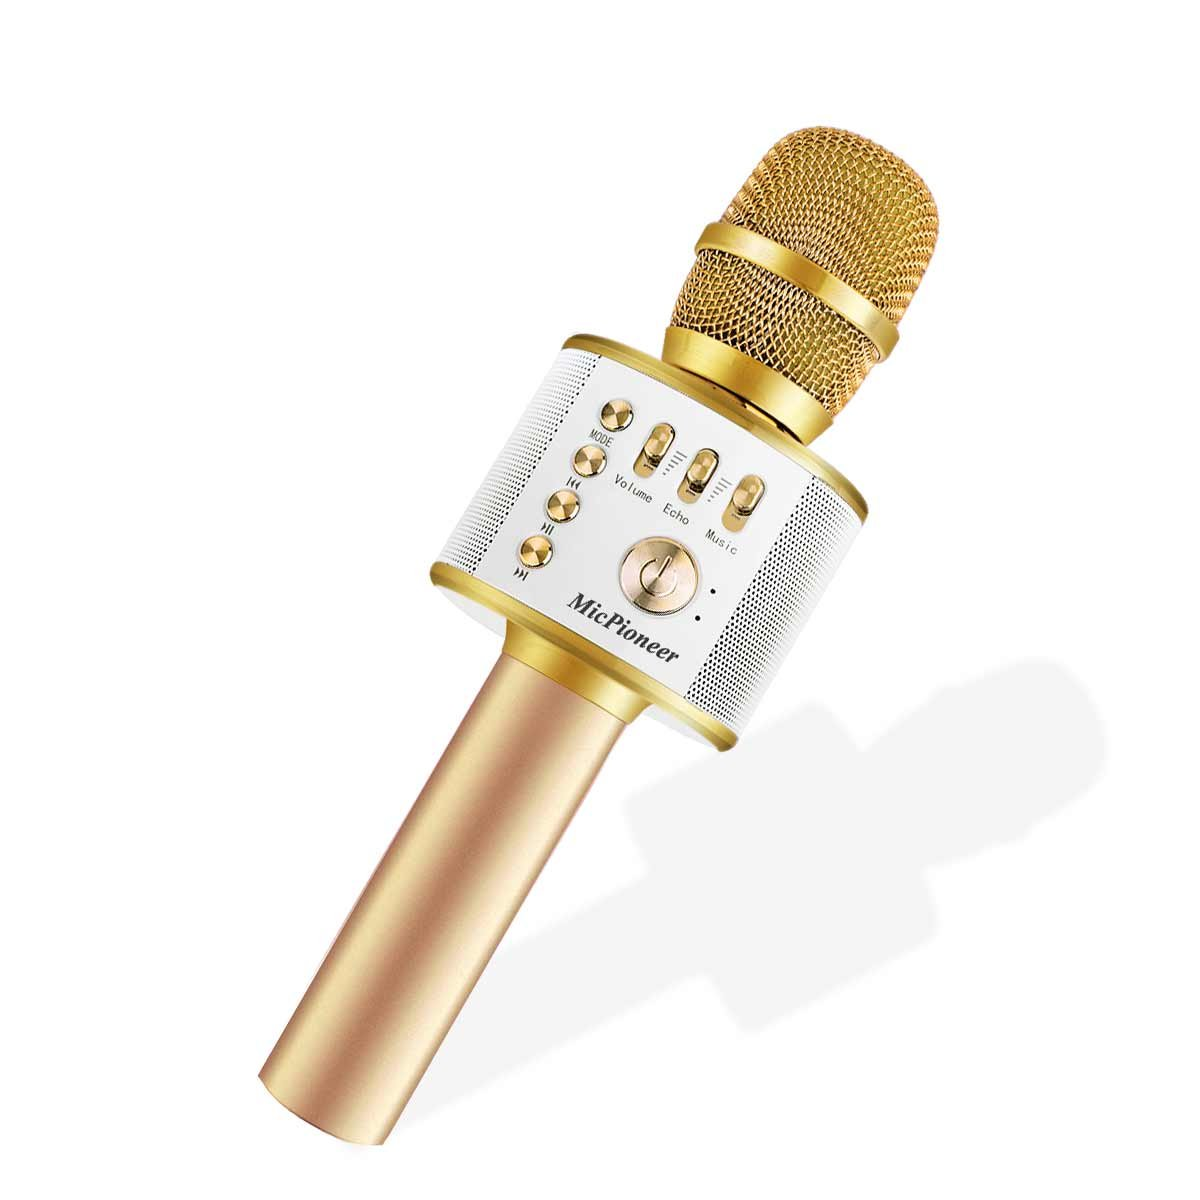 Bluetooth Karaoke Microphones, Micpioneer 3 in 1 Multi-function Wireless Microphone Speaker for iPhone, Android, Portable Mic for KTV, Home, Party Singing (Light Gold)